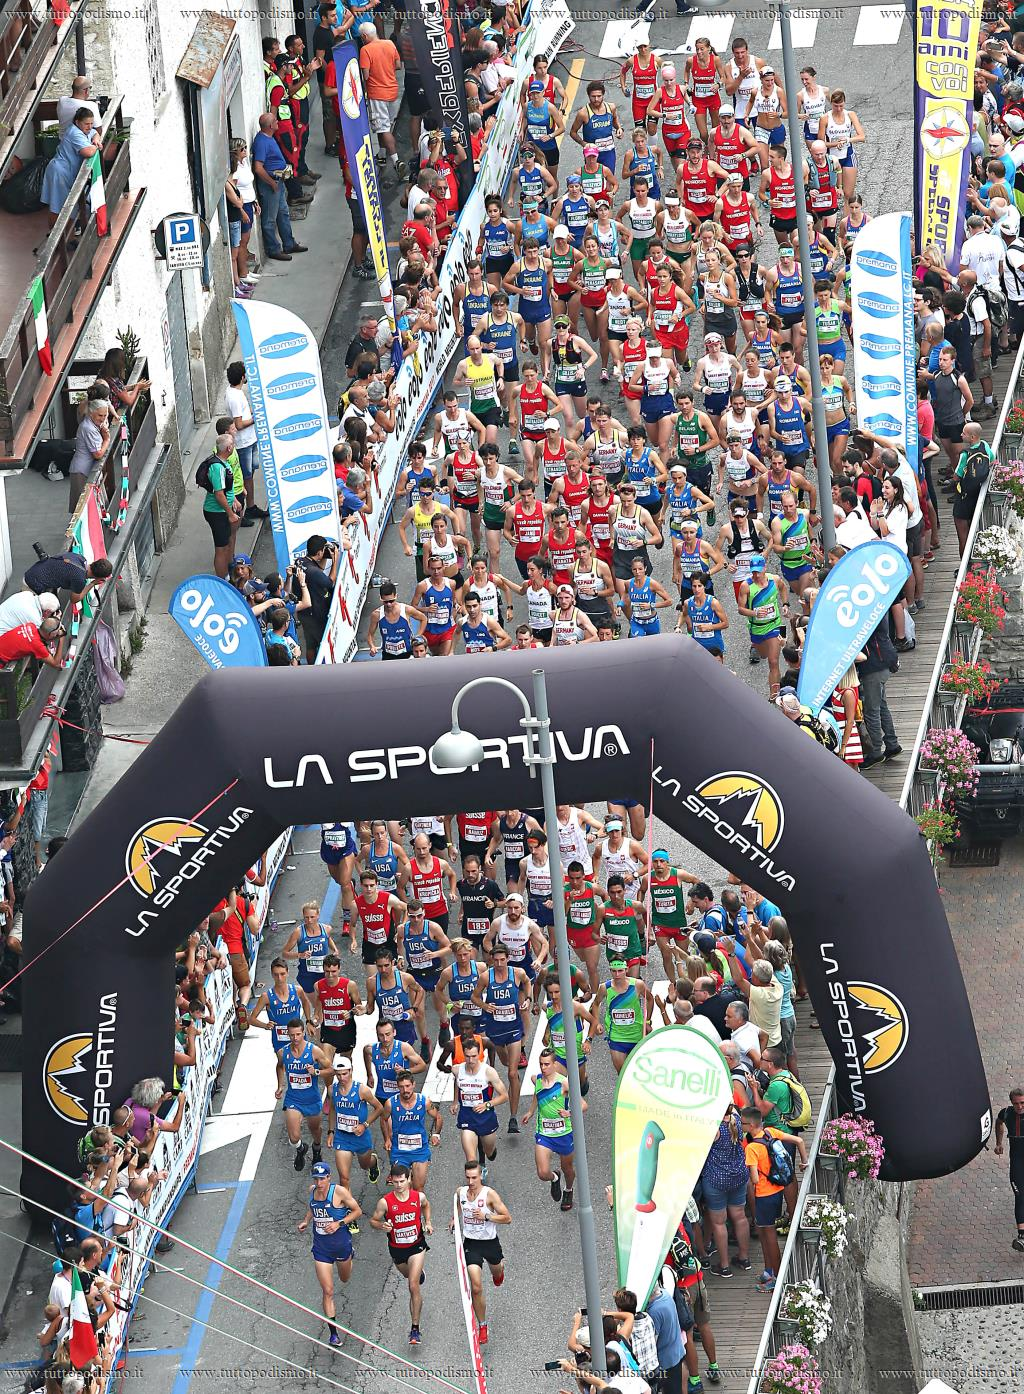 14o_World_Mountain_Running_Championship_long_distance - partenza3.jpg